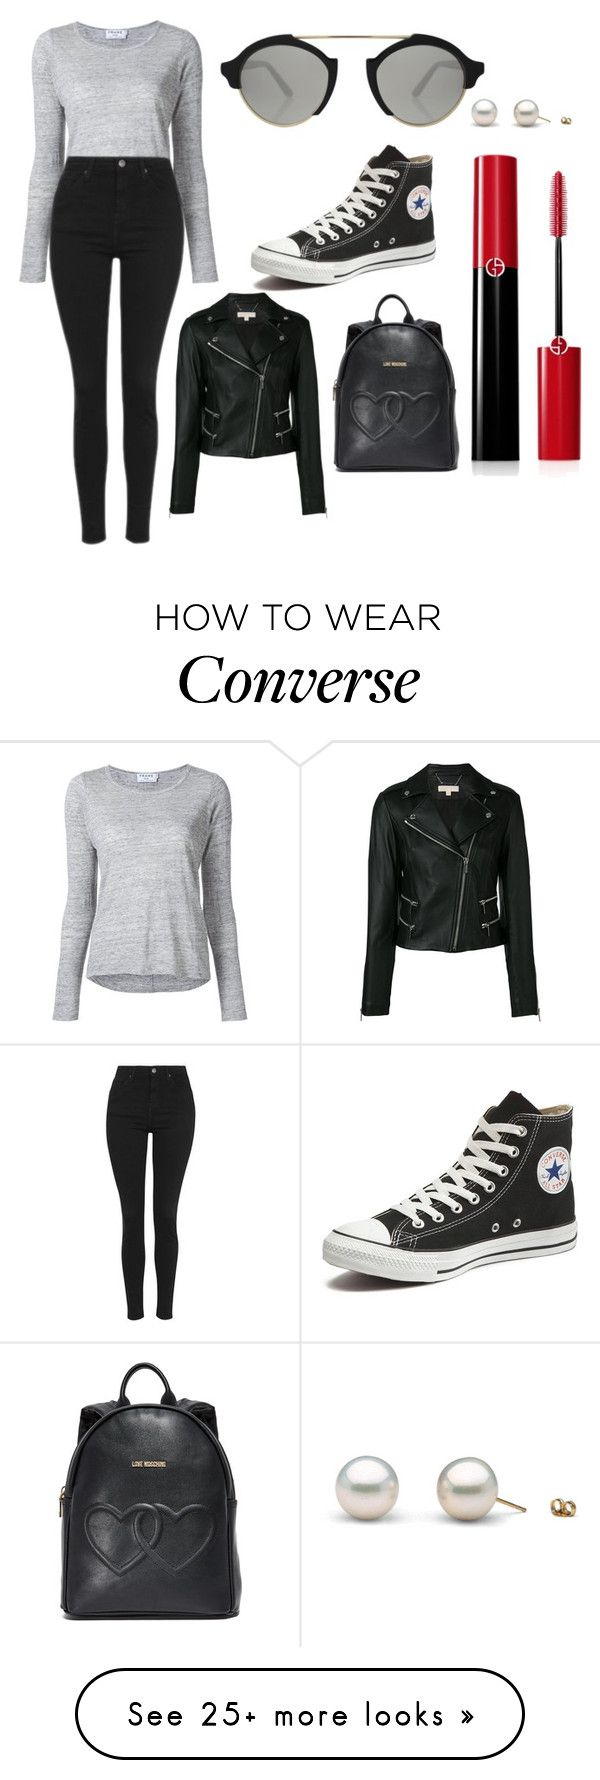 """Sans titre #5223"" by merveille67120 on Polyvore featuring Frame, Topshop, Converse, Illesteva, MICHAEL Michael Kors, Moschino and Giorgio Armani"